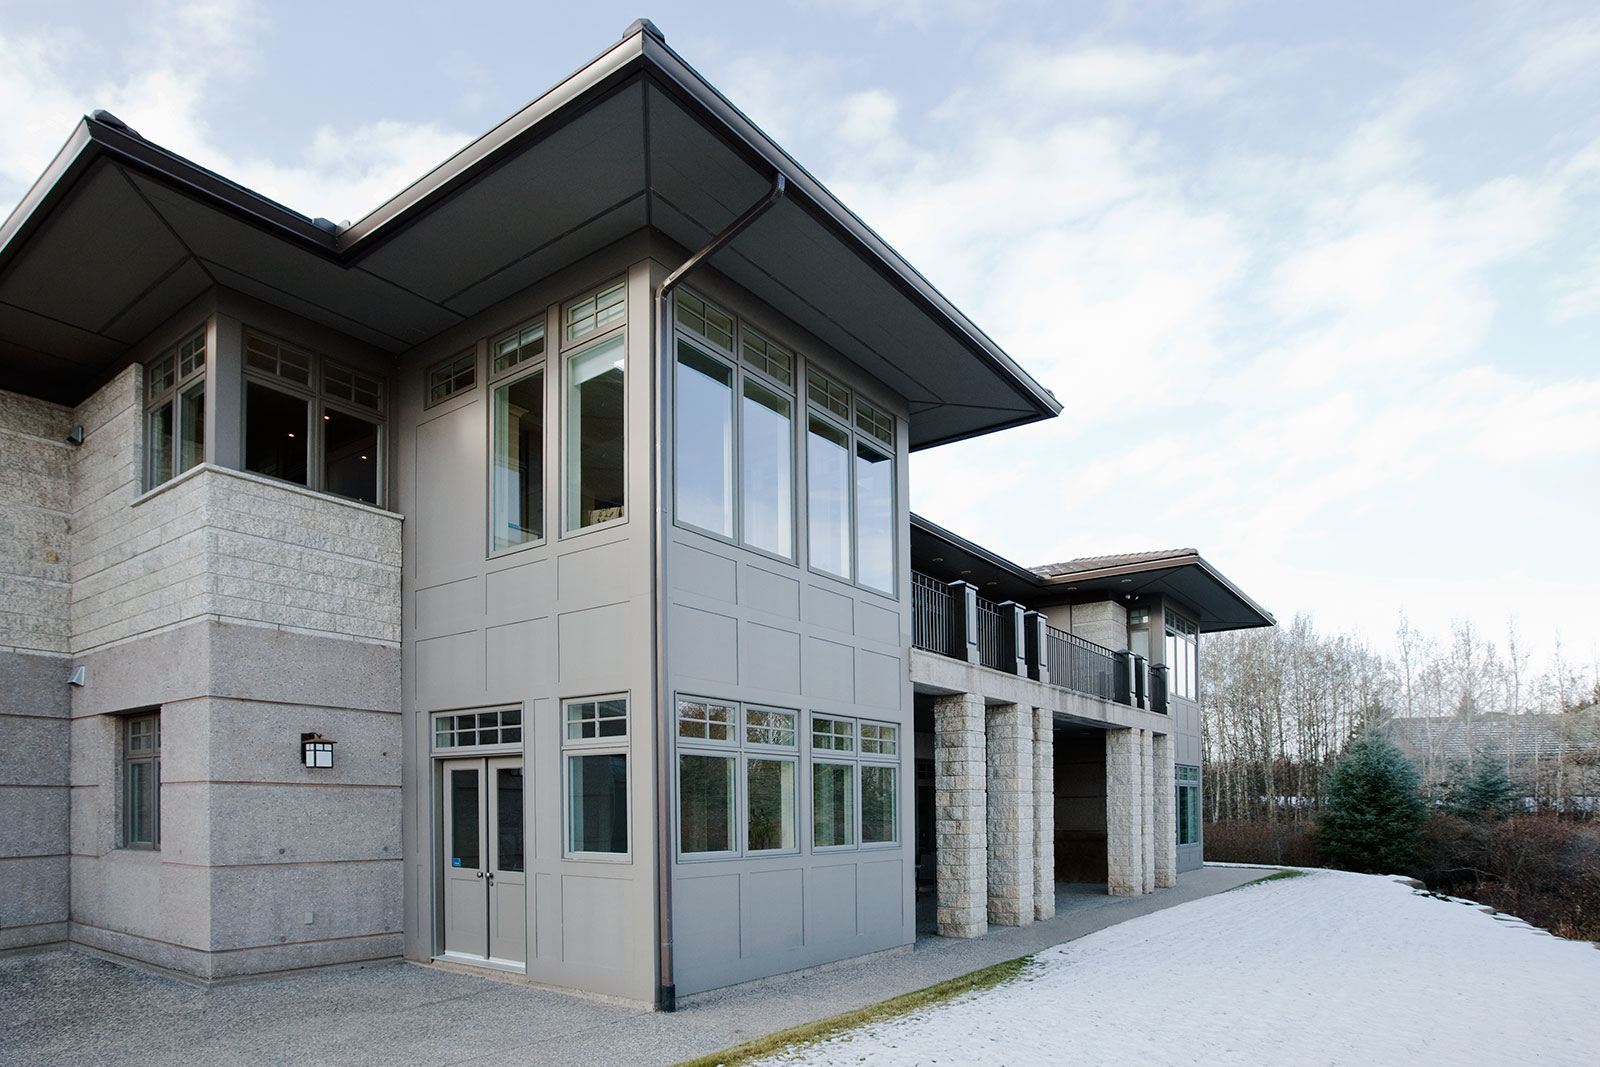 The Roof Too Is Kept Low With Large Overhangs And A Shallow Slope. At The  Rear Of The House The Concrete Lower Floor Creates A Strong Base For The  House.